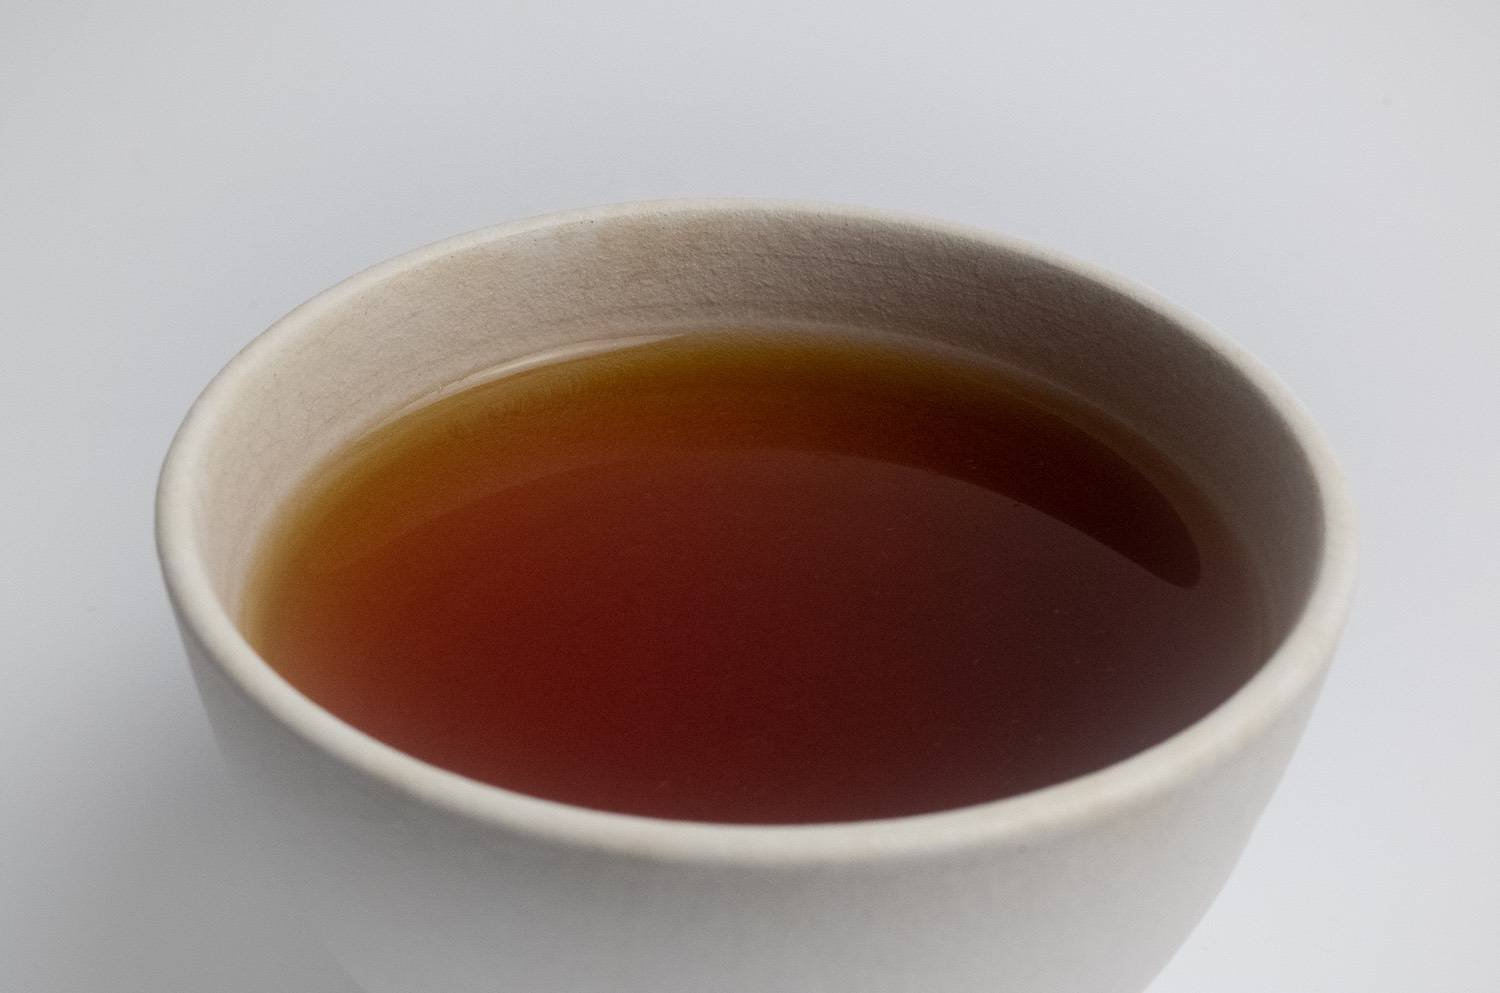 What Kinds of Ingredients/Nutrition are in Black tea?